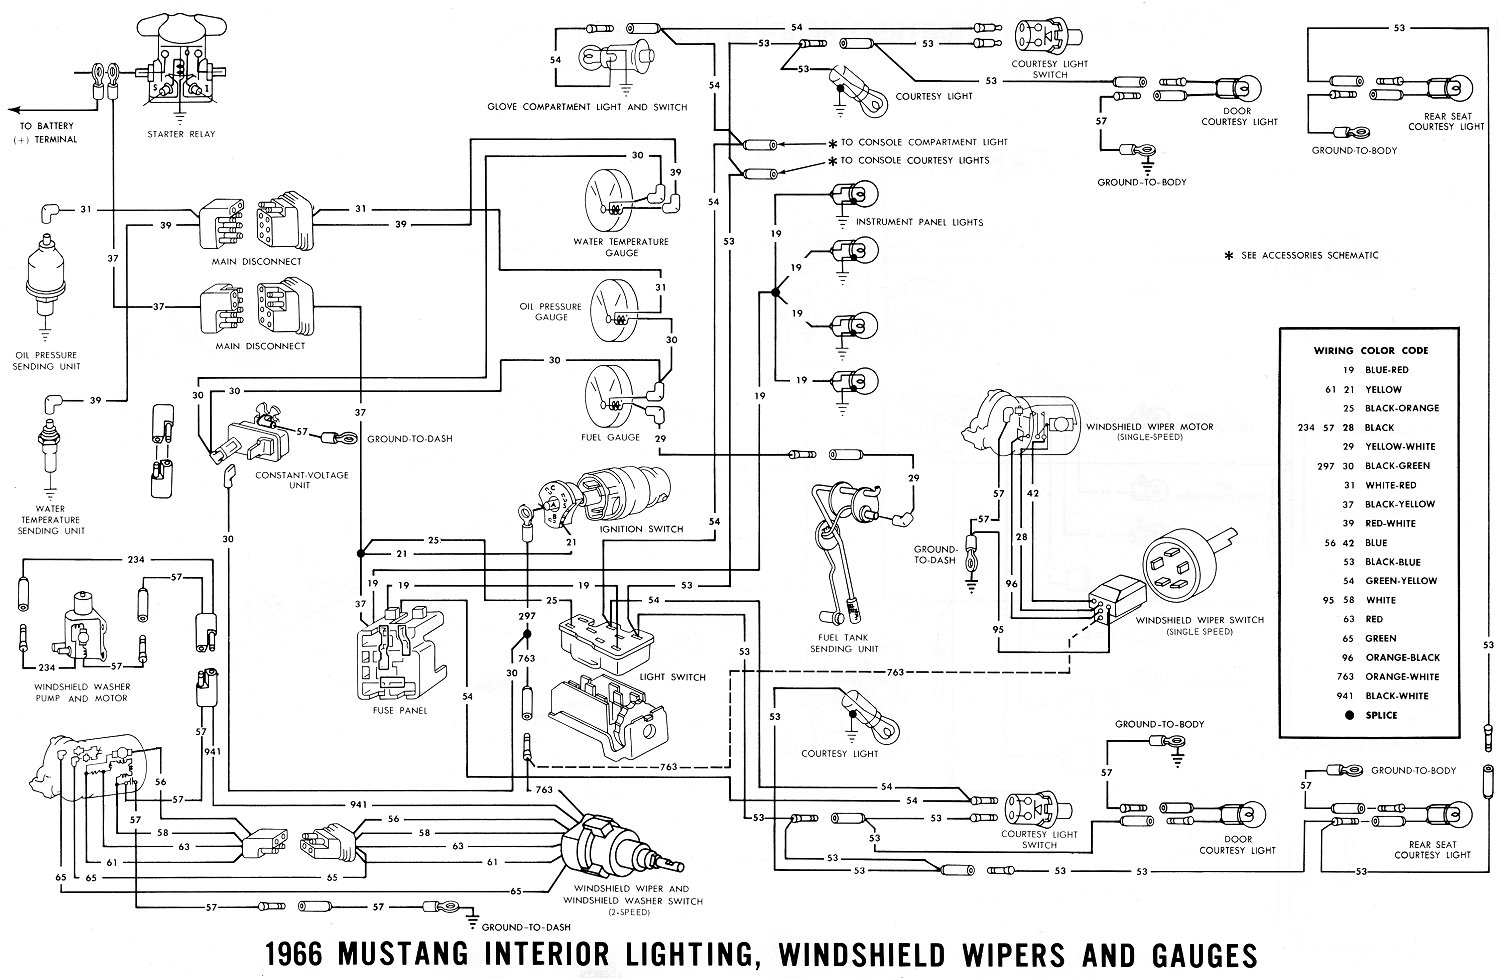 1966 Mustang Interior Lighting Diagram 66 mustang wiring diagram online 65 ford mustang wiring diagram 1969 mustang wiring diagram online at gsmx.co